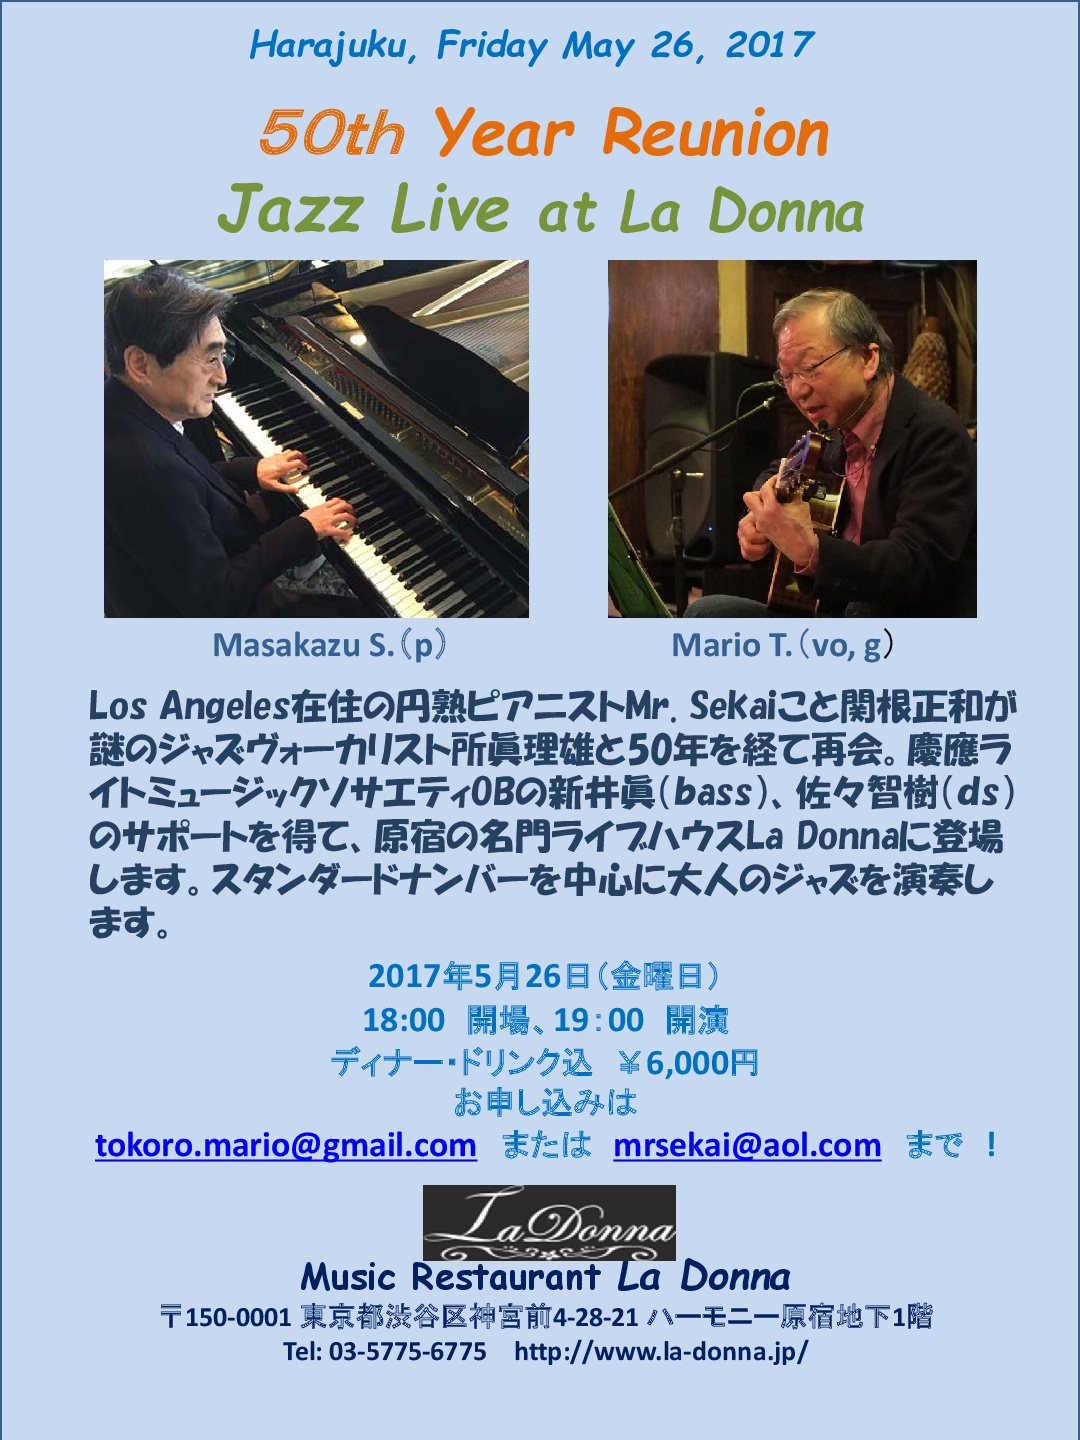 50th Year Reunion Jazz Live at Ladonna